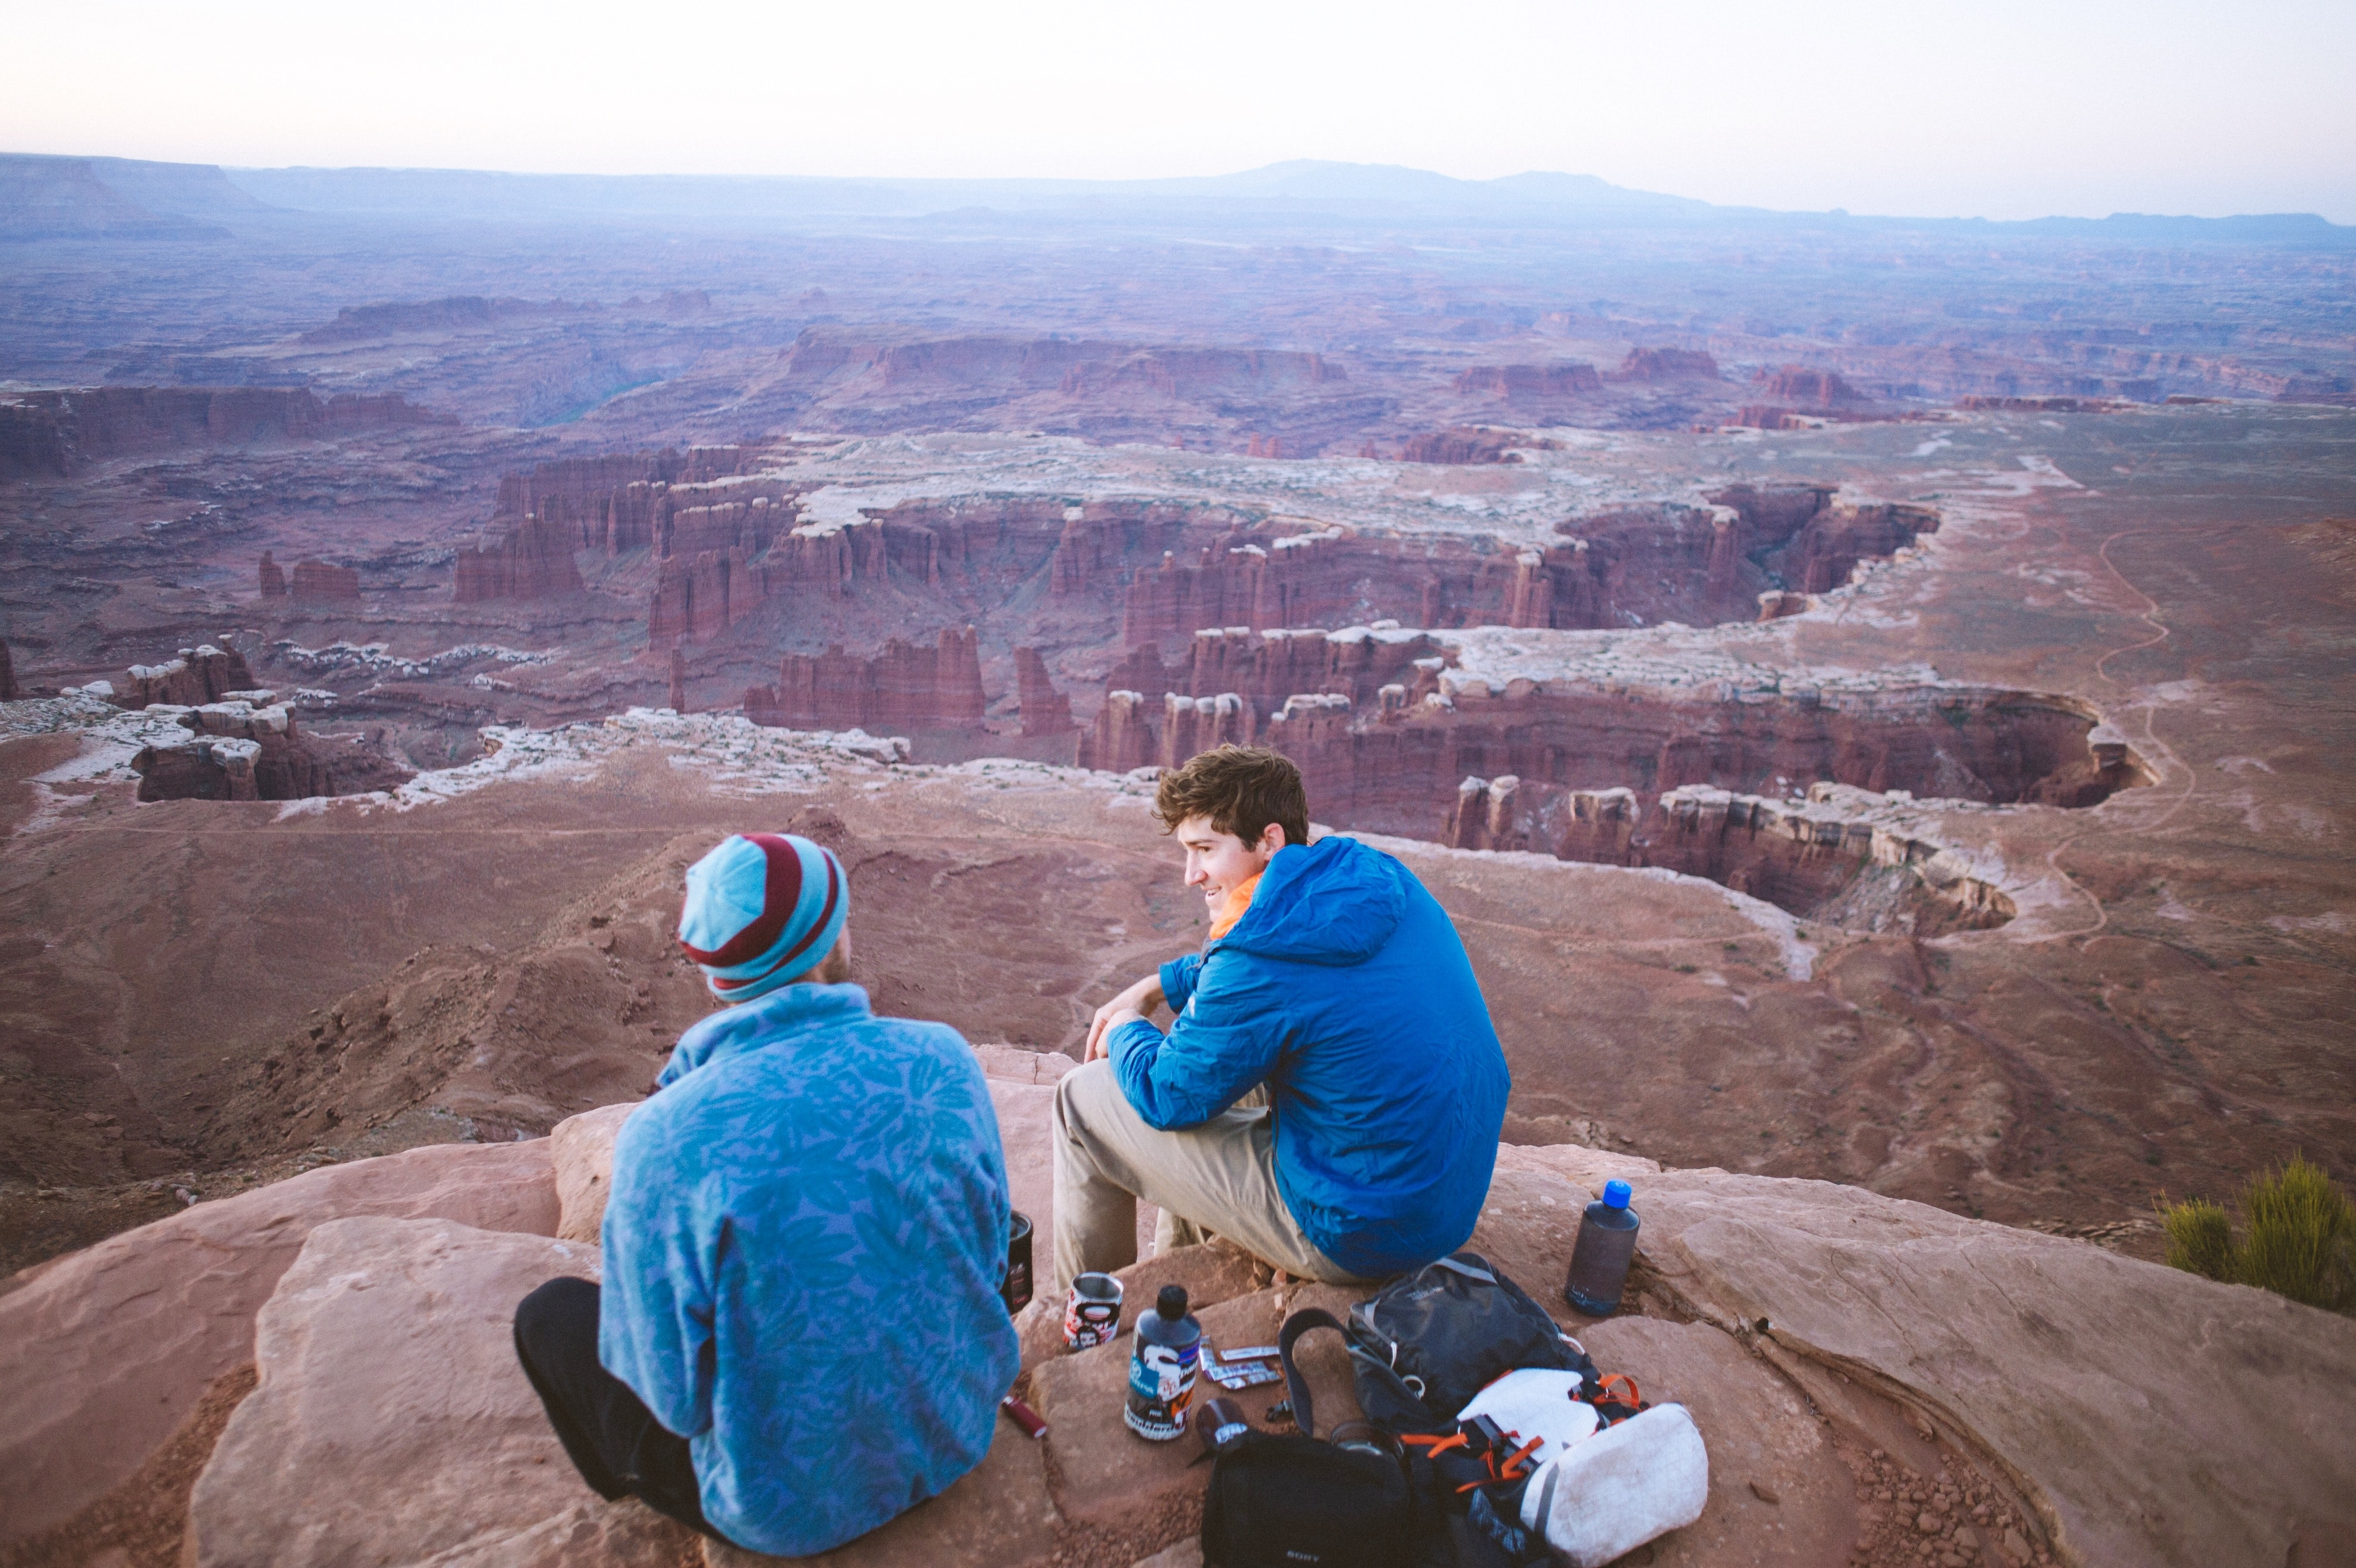 Relaxing atop a peak overlooking craggy canyons